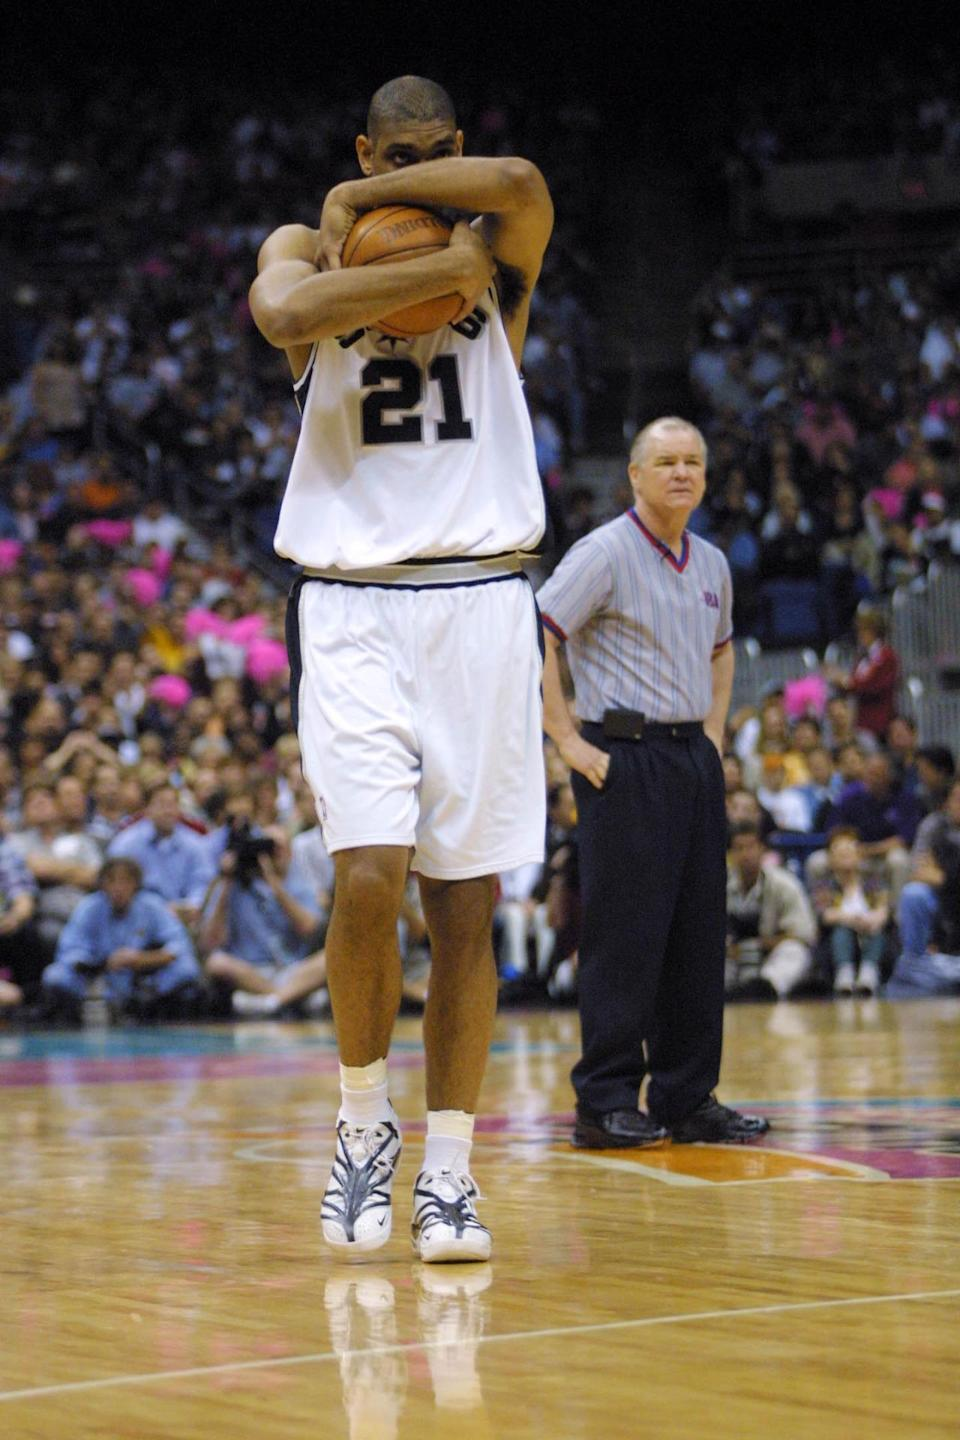 <p>2001: Tim Duncan #21 of the San Antonio Spurs during game two of round one of the NBA playoffs against the Minnesota Timberwolves at the Alamodome in San Antonio, Texas. The Spurs won 86-69. DIGITAL IMAGE. Mandatory Credit: Ronald Martinez/Allsport<br></p>